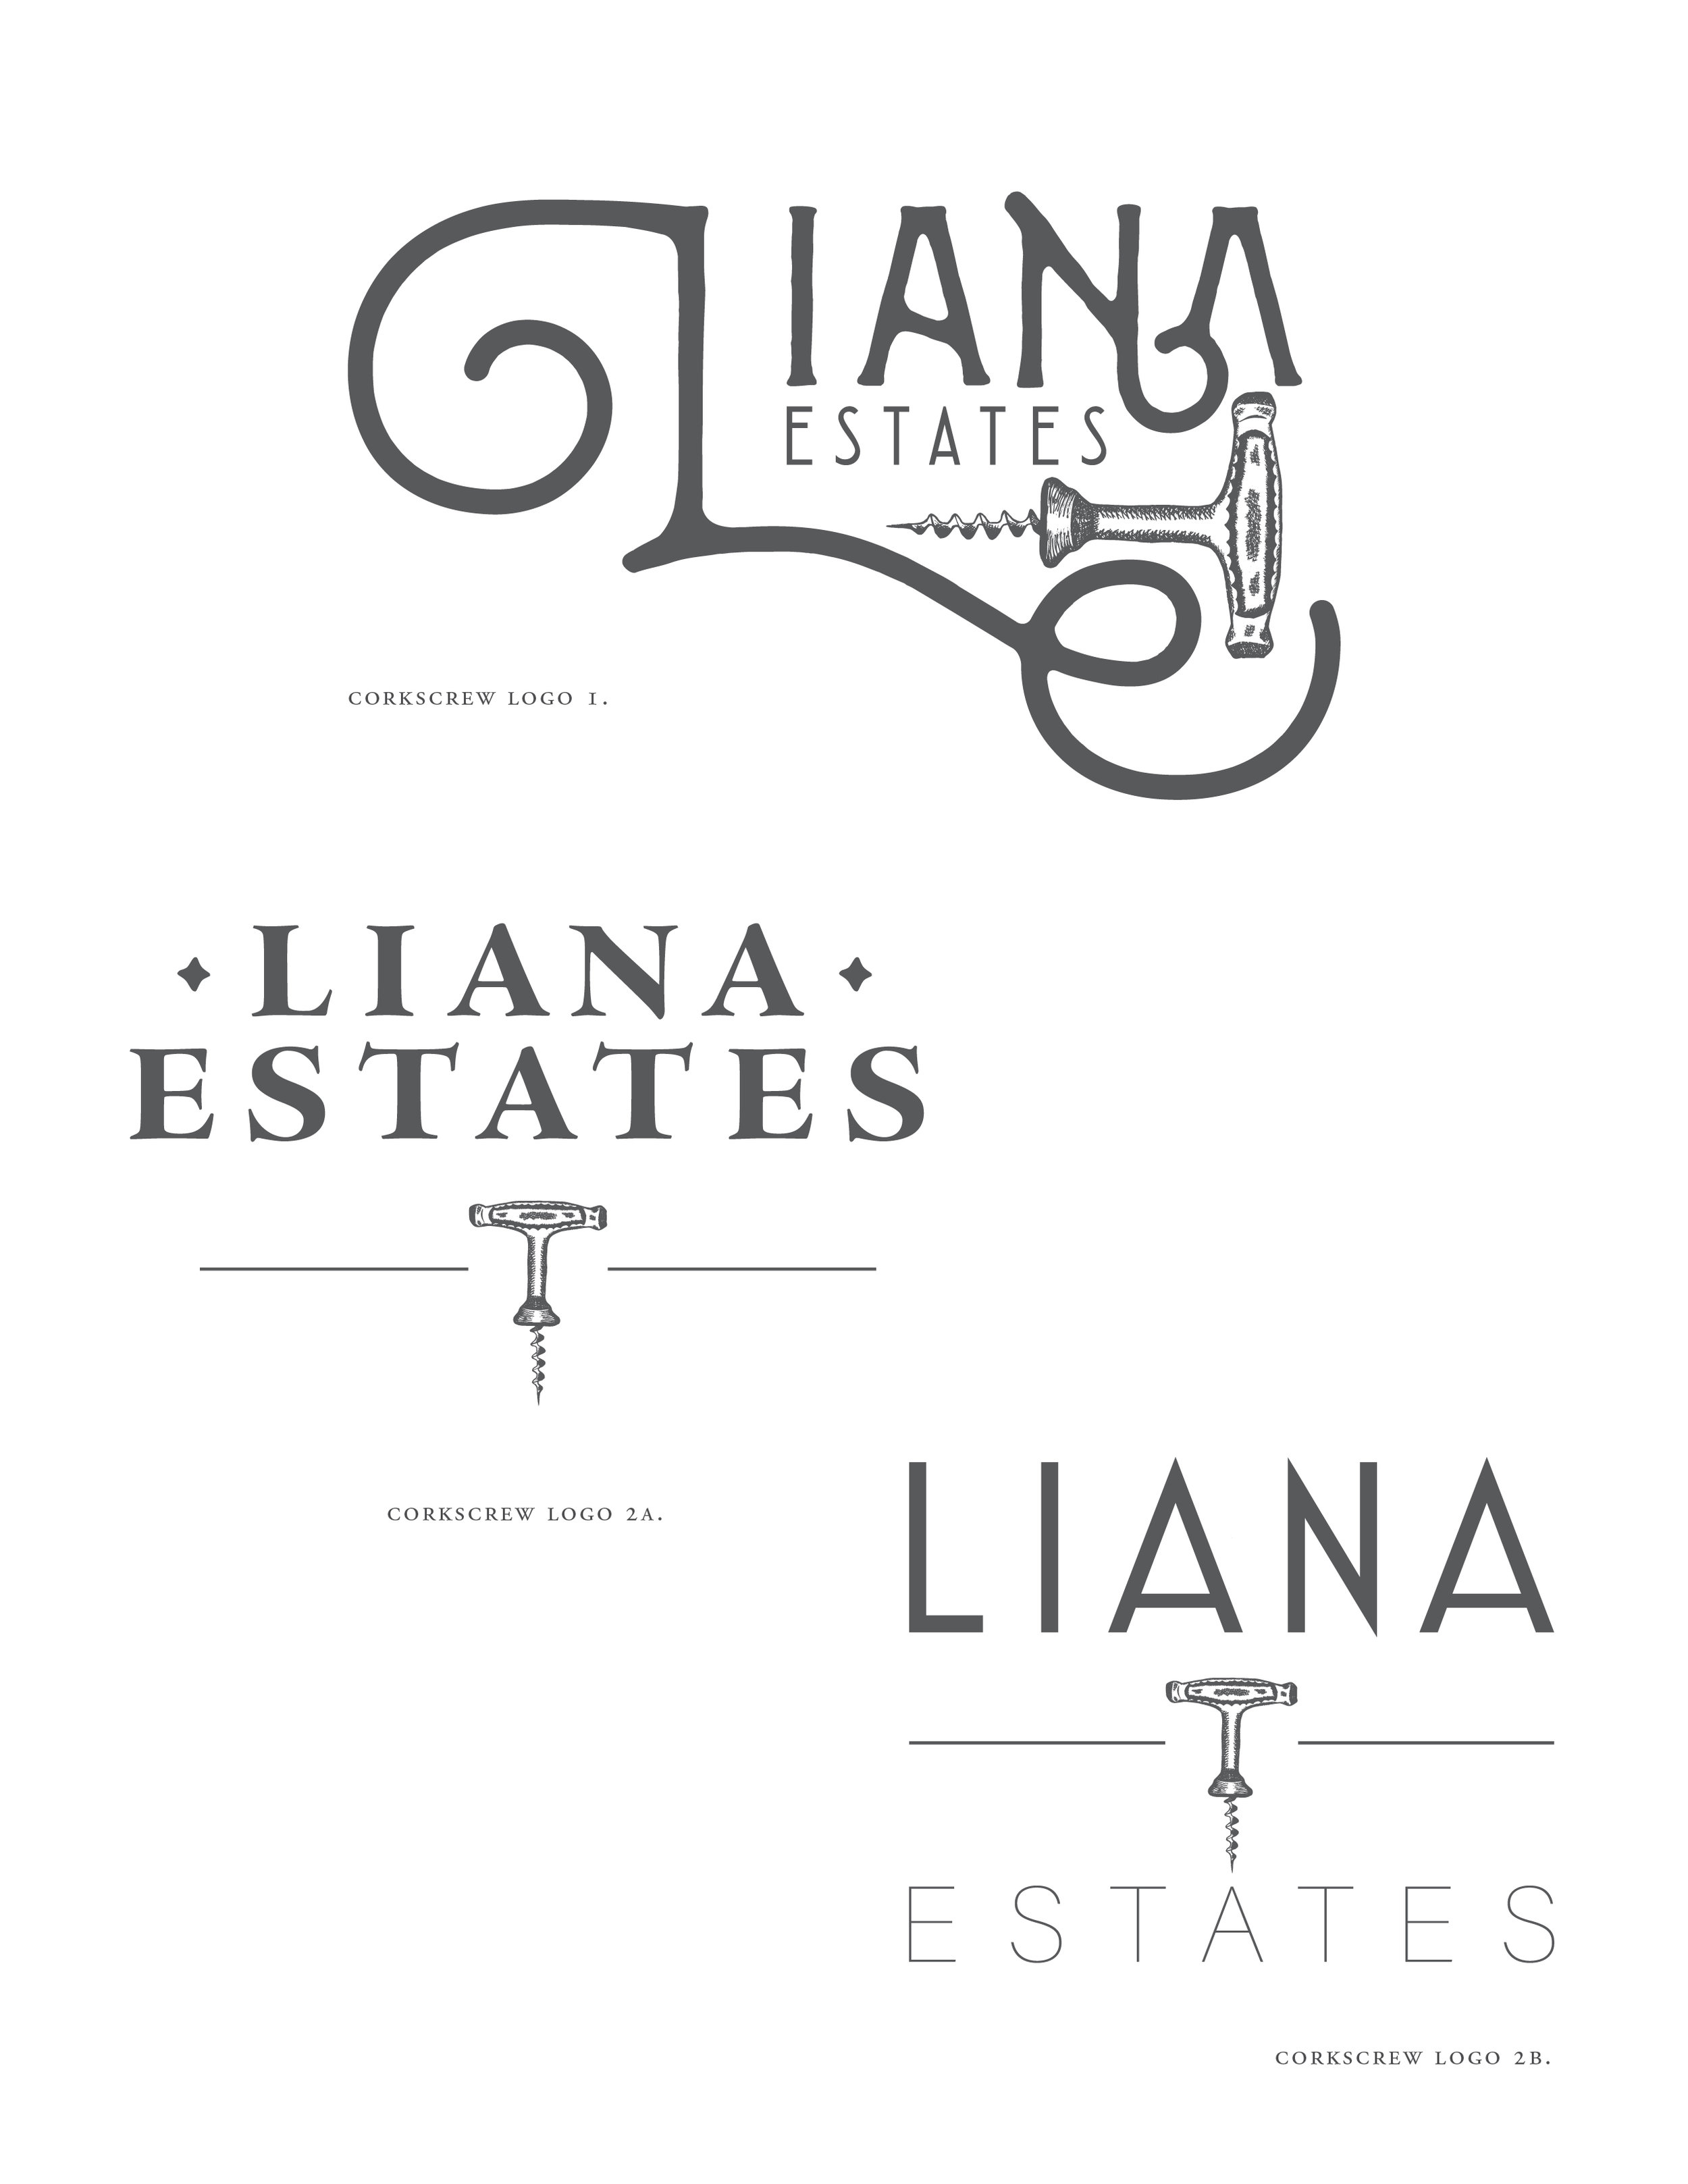 Logo Concepts   Presentation of different logo options with the corkscrew graphic incorporating elements and styles the client was drawn to in the Pinterest / inspiration board part of the process. ˙